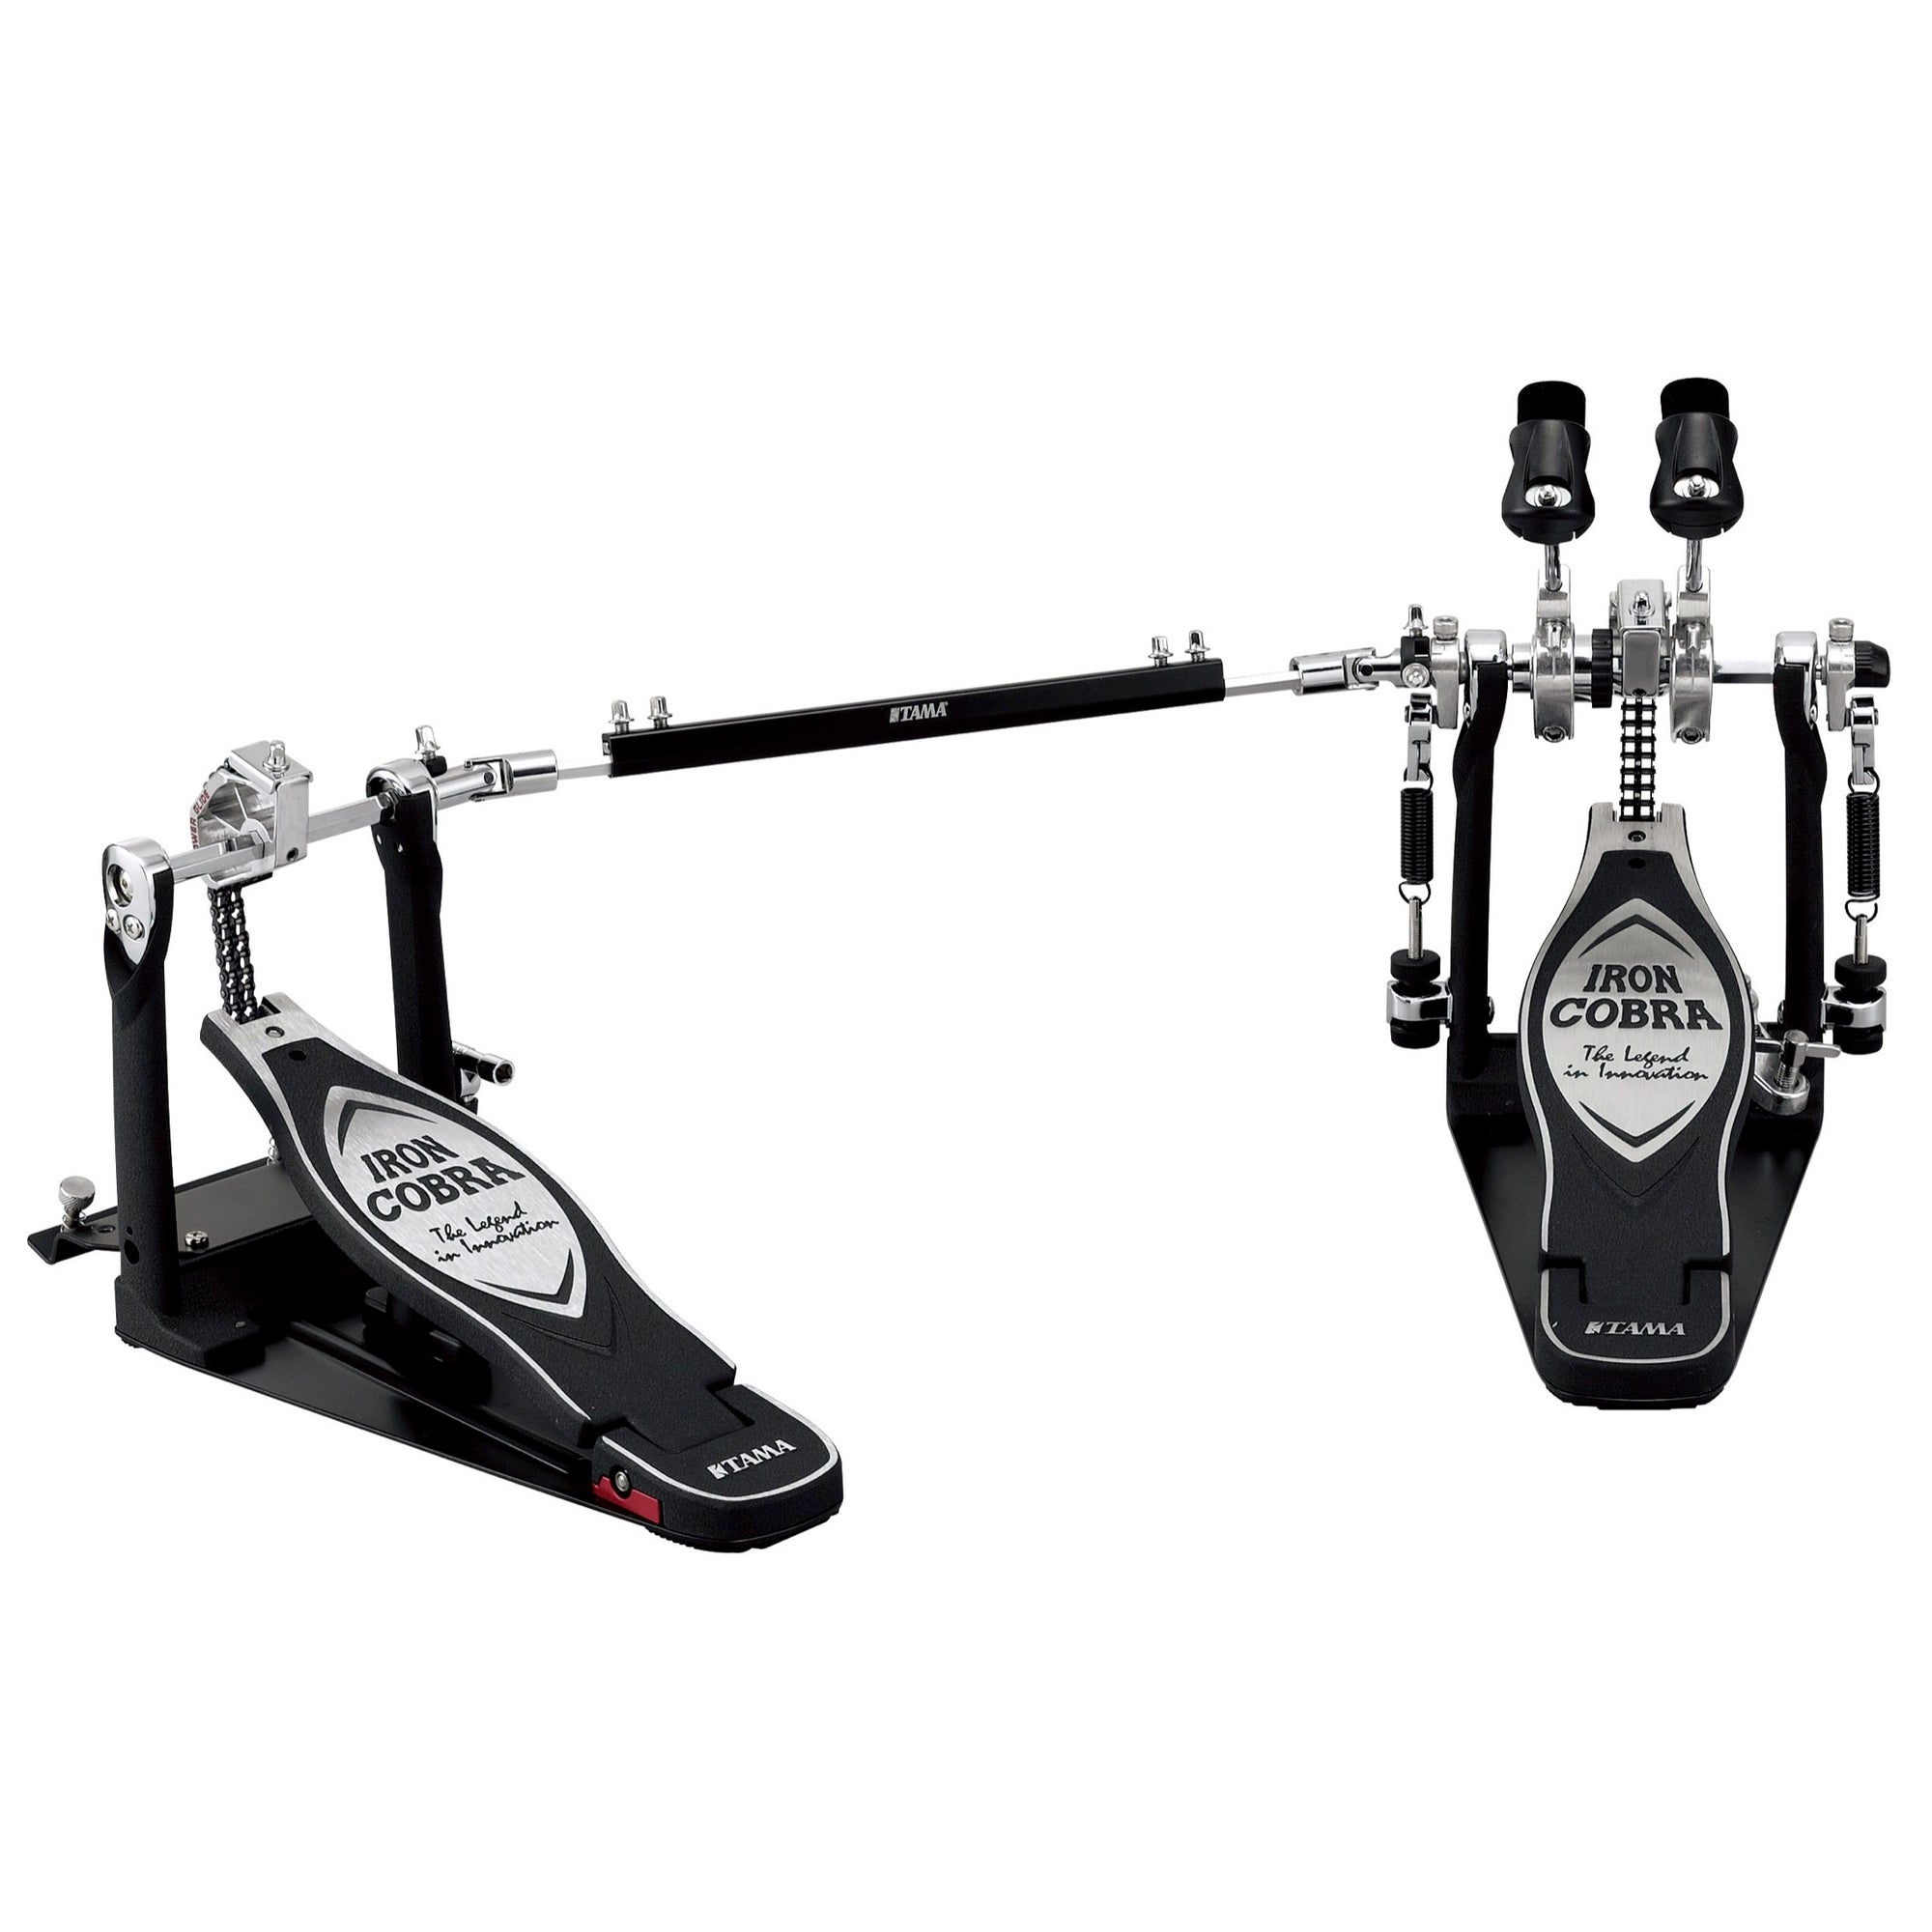 Tama HP900PWN Iron Cobra Power Glide Double Bass Drum Pedal (with Case)